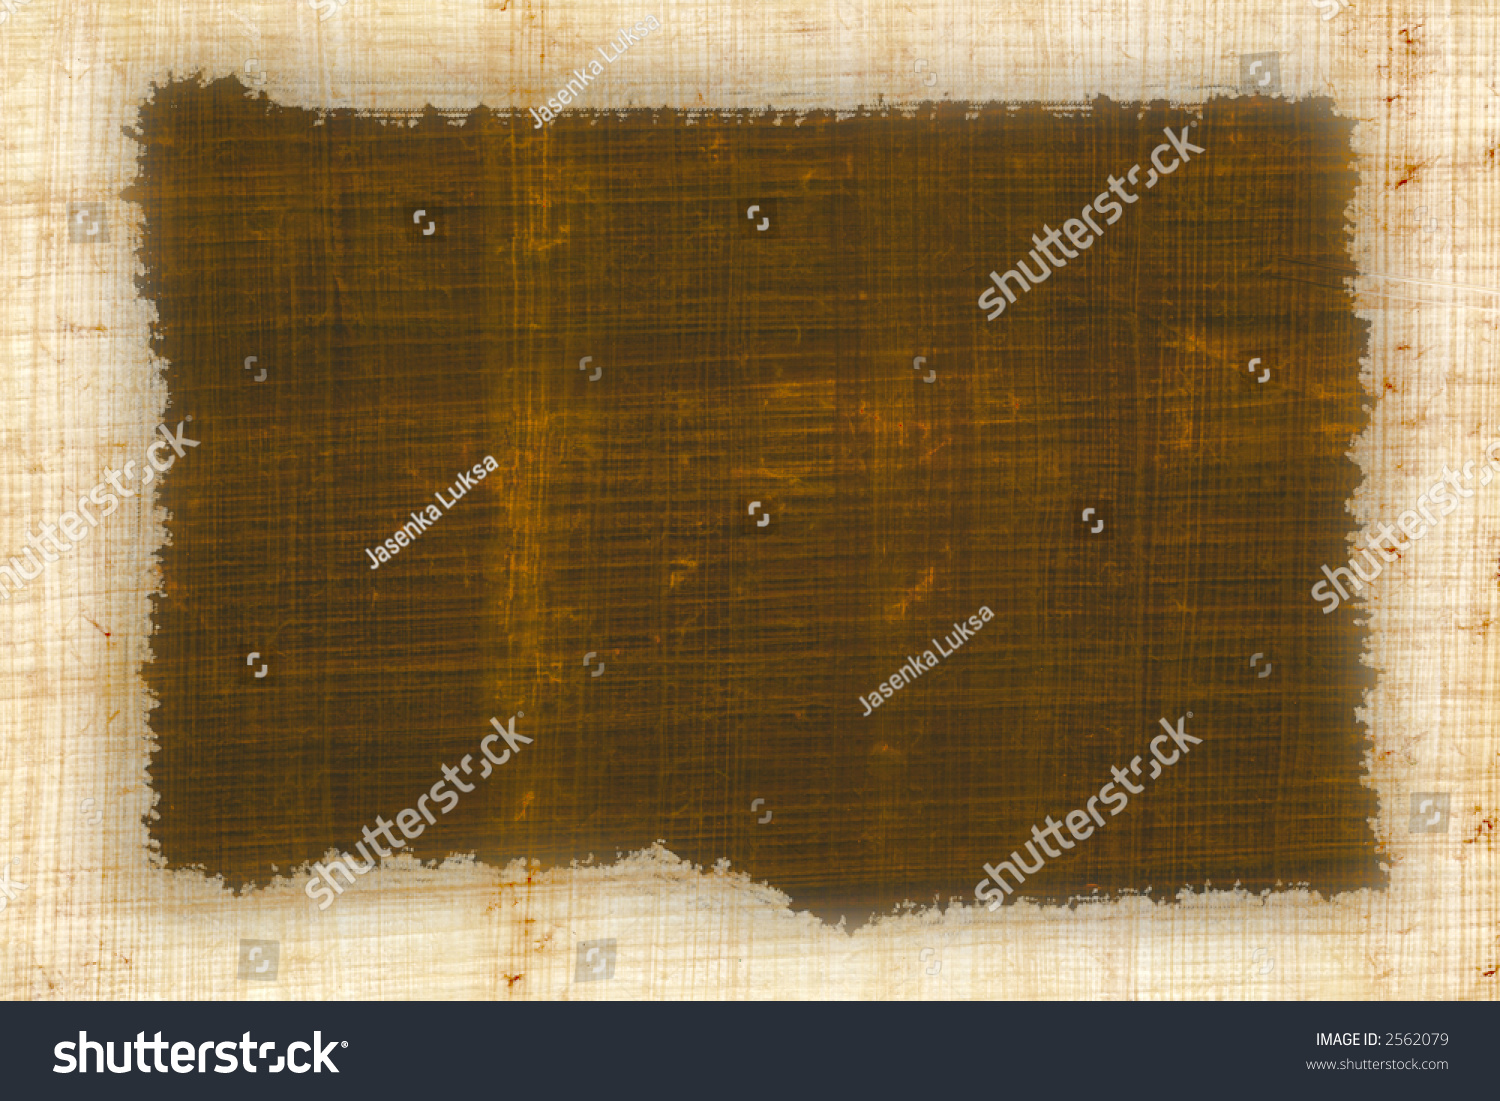 Piece Old Papyrus Like Frame Stock Photo 2562079 - Shutterstock